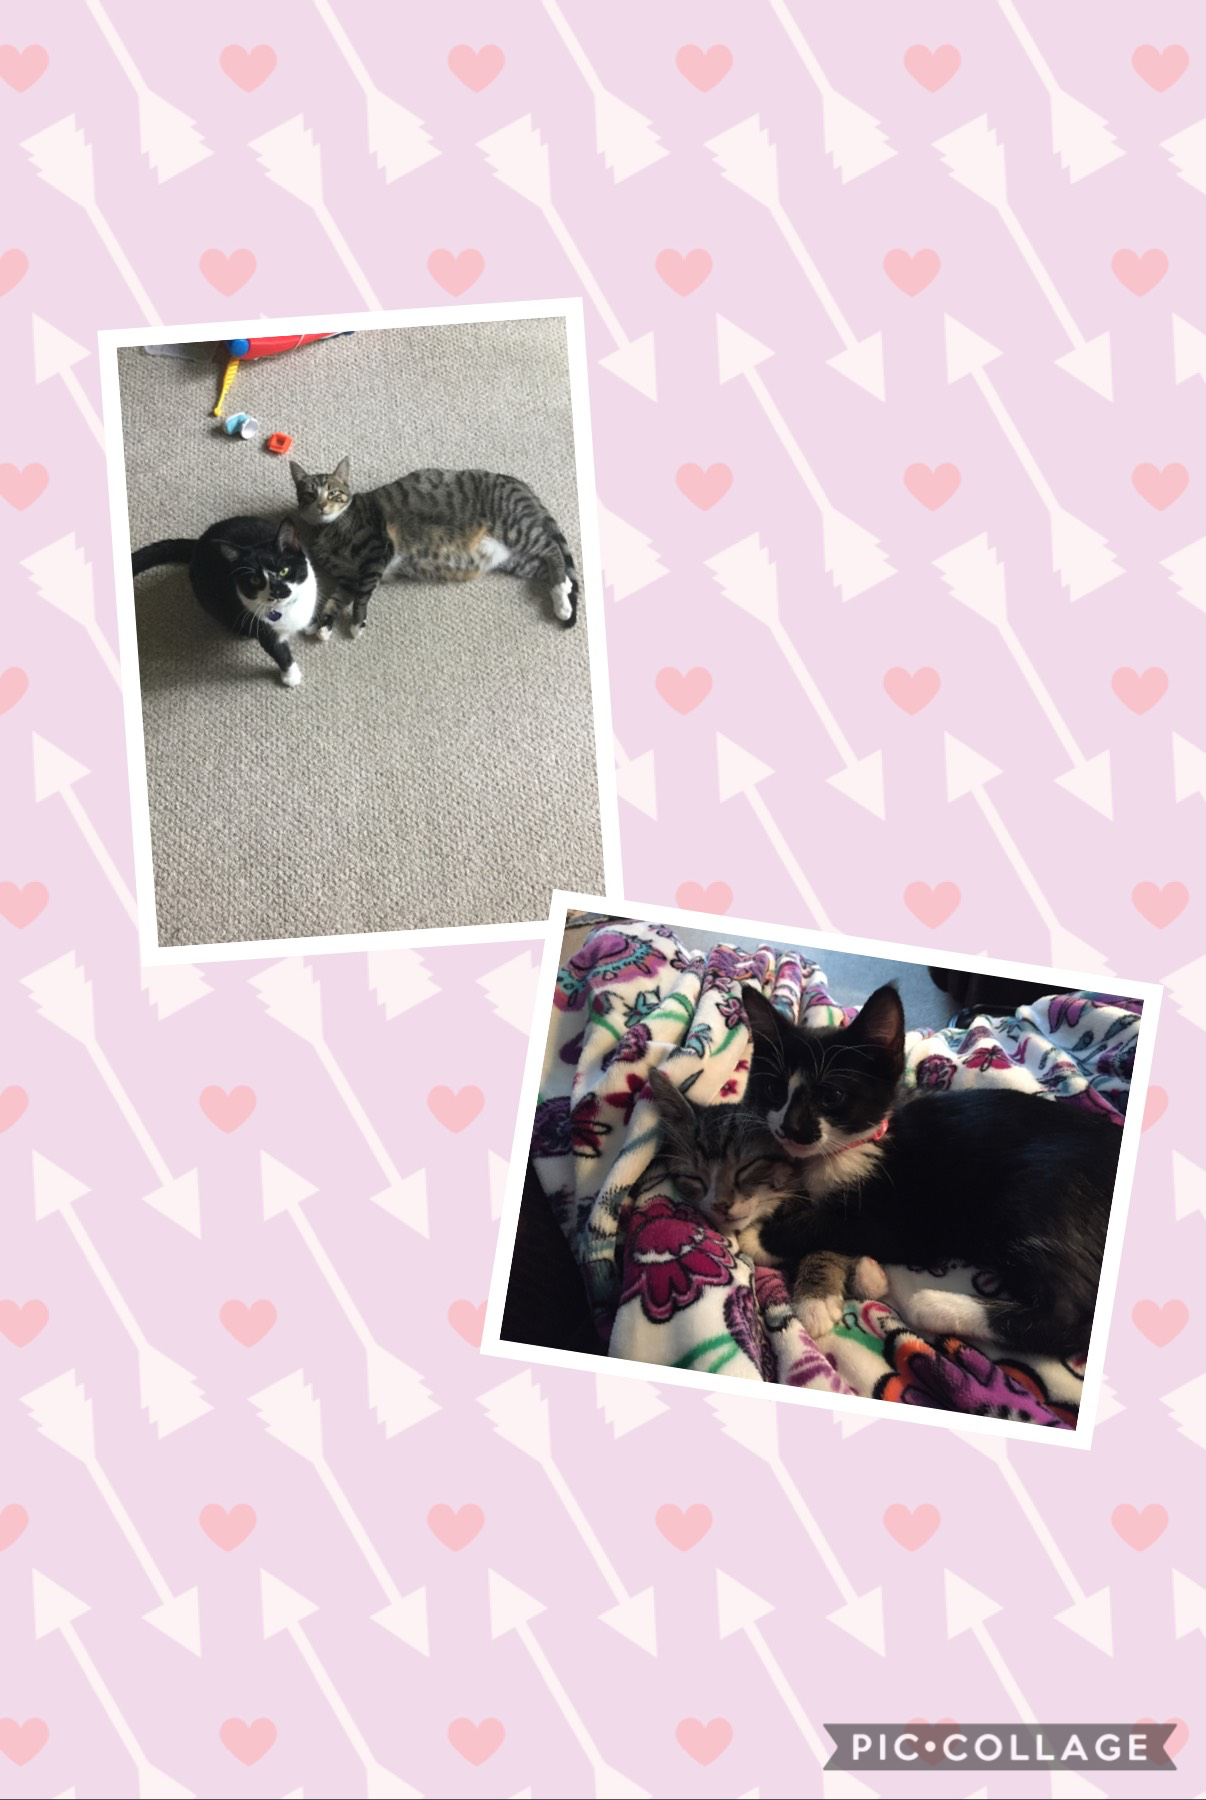 I can't believe how fast these kittens grow! That is how small they were and now they are huge! They are only 1 year old!!